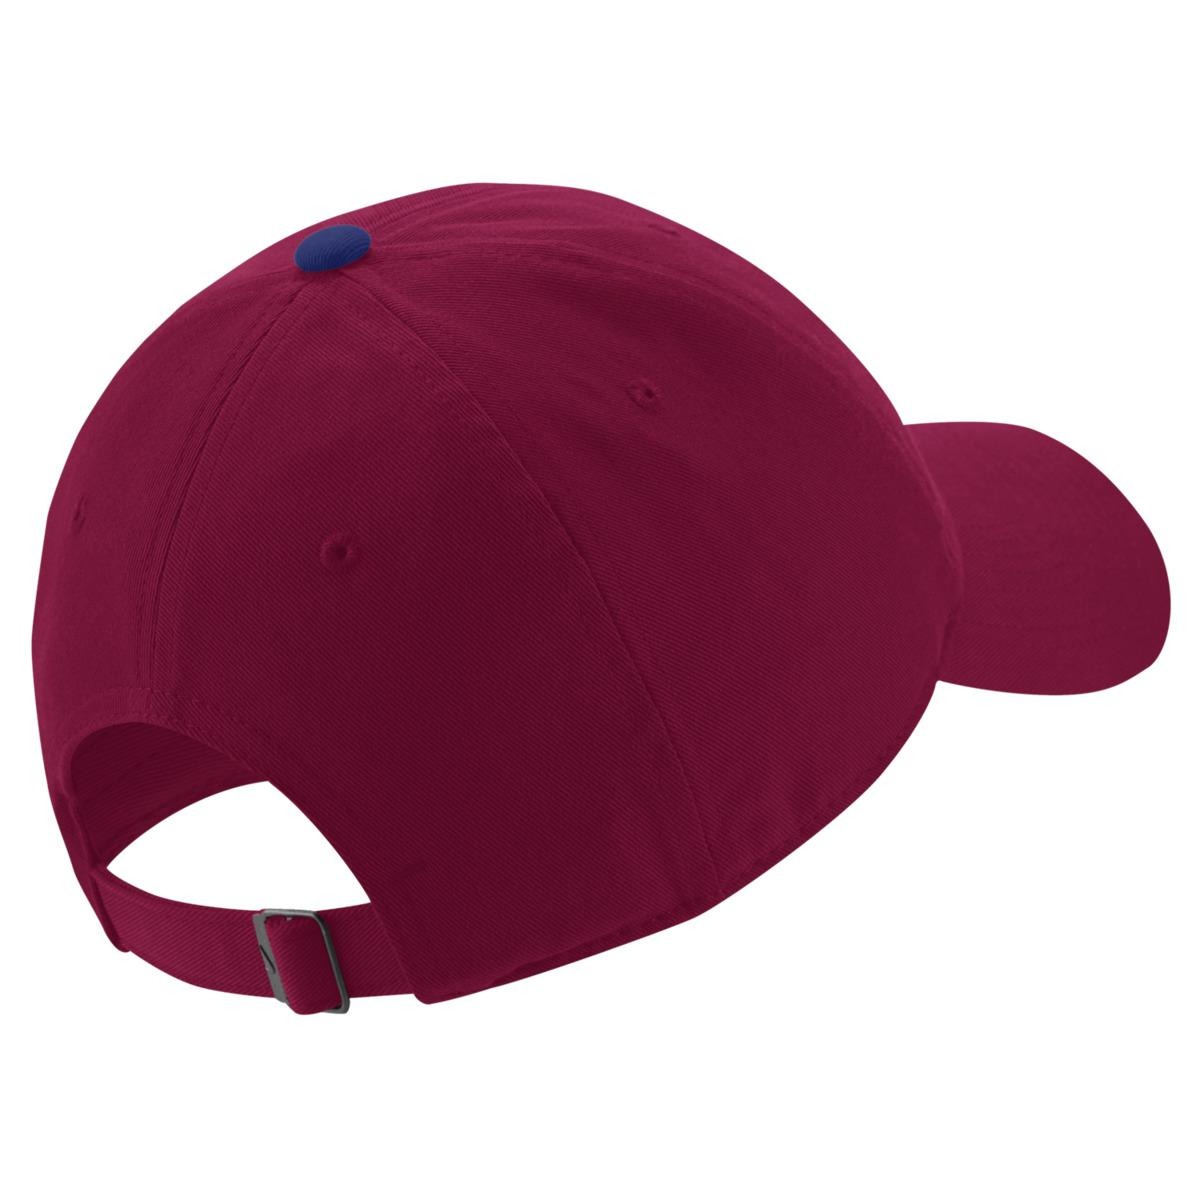 6c6bf708b80 Nike Fc Barcelona 2018-2019 Heritage Cap in Purple for Men - Lyst